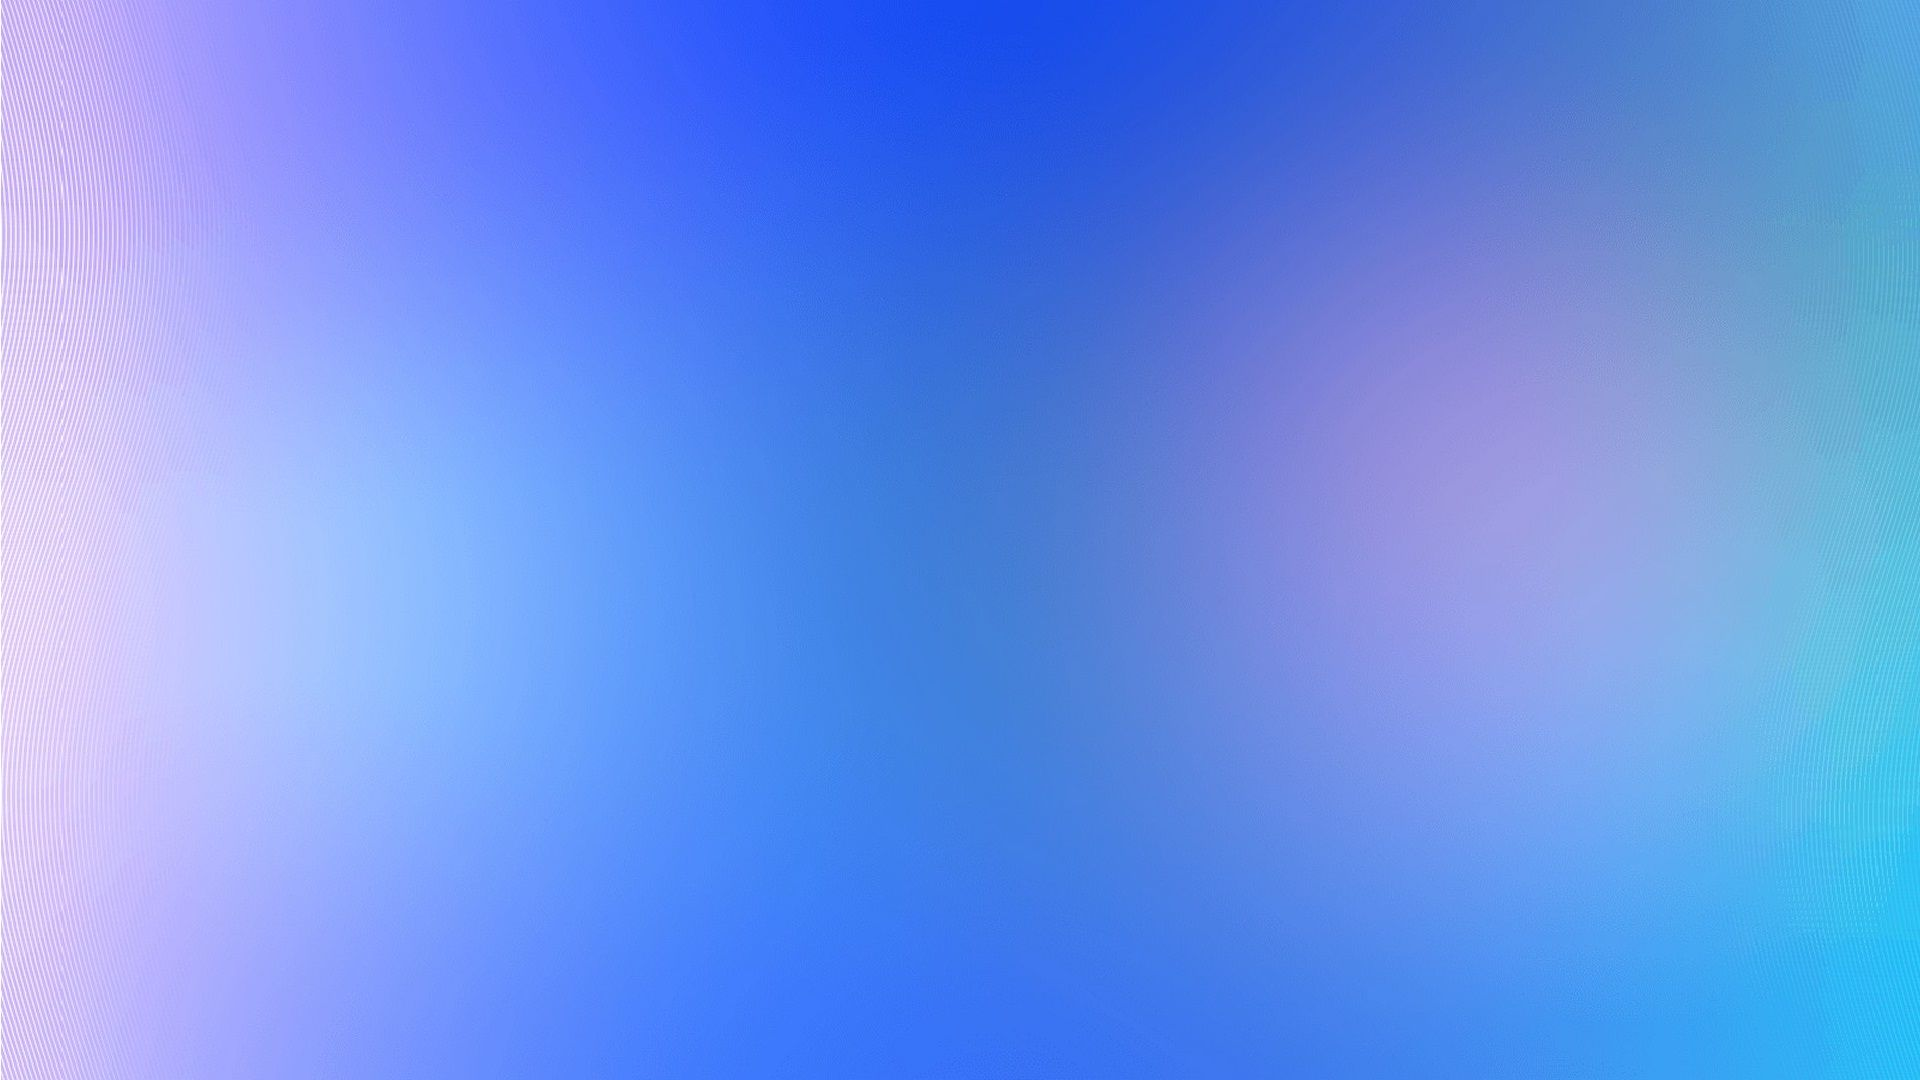 Gradient Hd Wallpaper Imagem De Fundo Whatsapp Fundo Verde